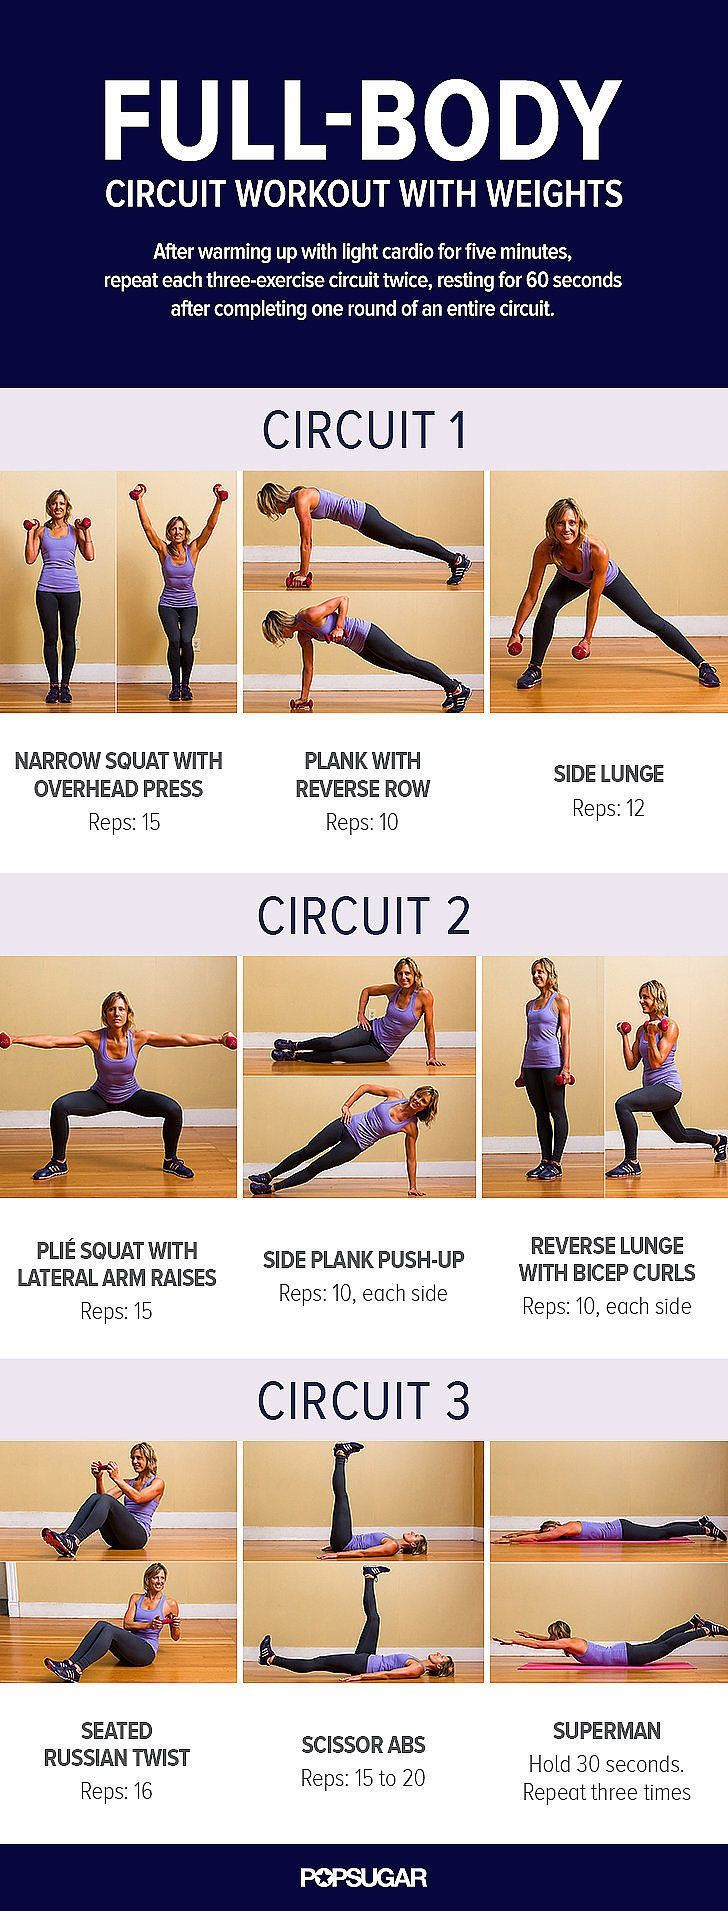 I love circut training, especially when you don't have gym access or want to get a quick workout on an active rest day!